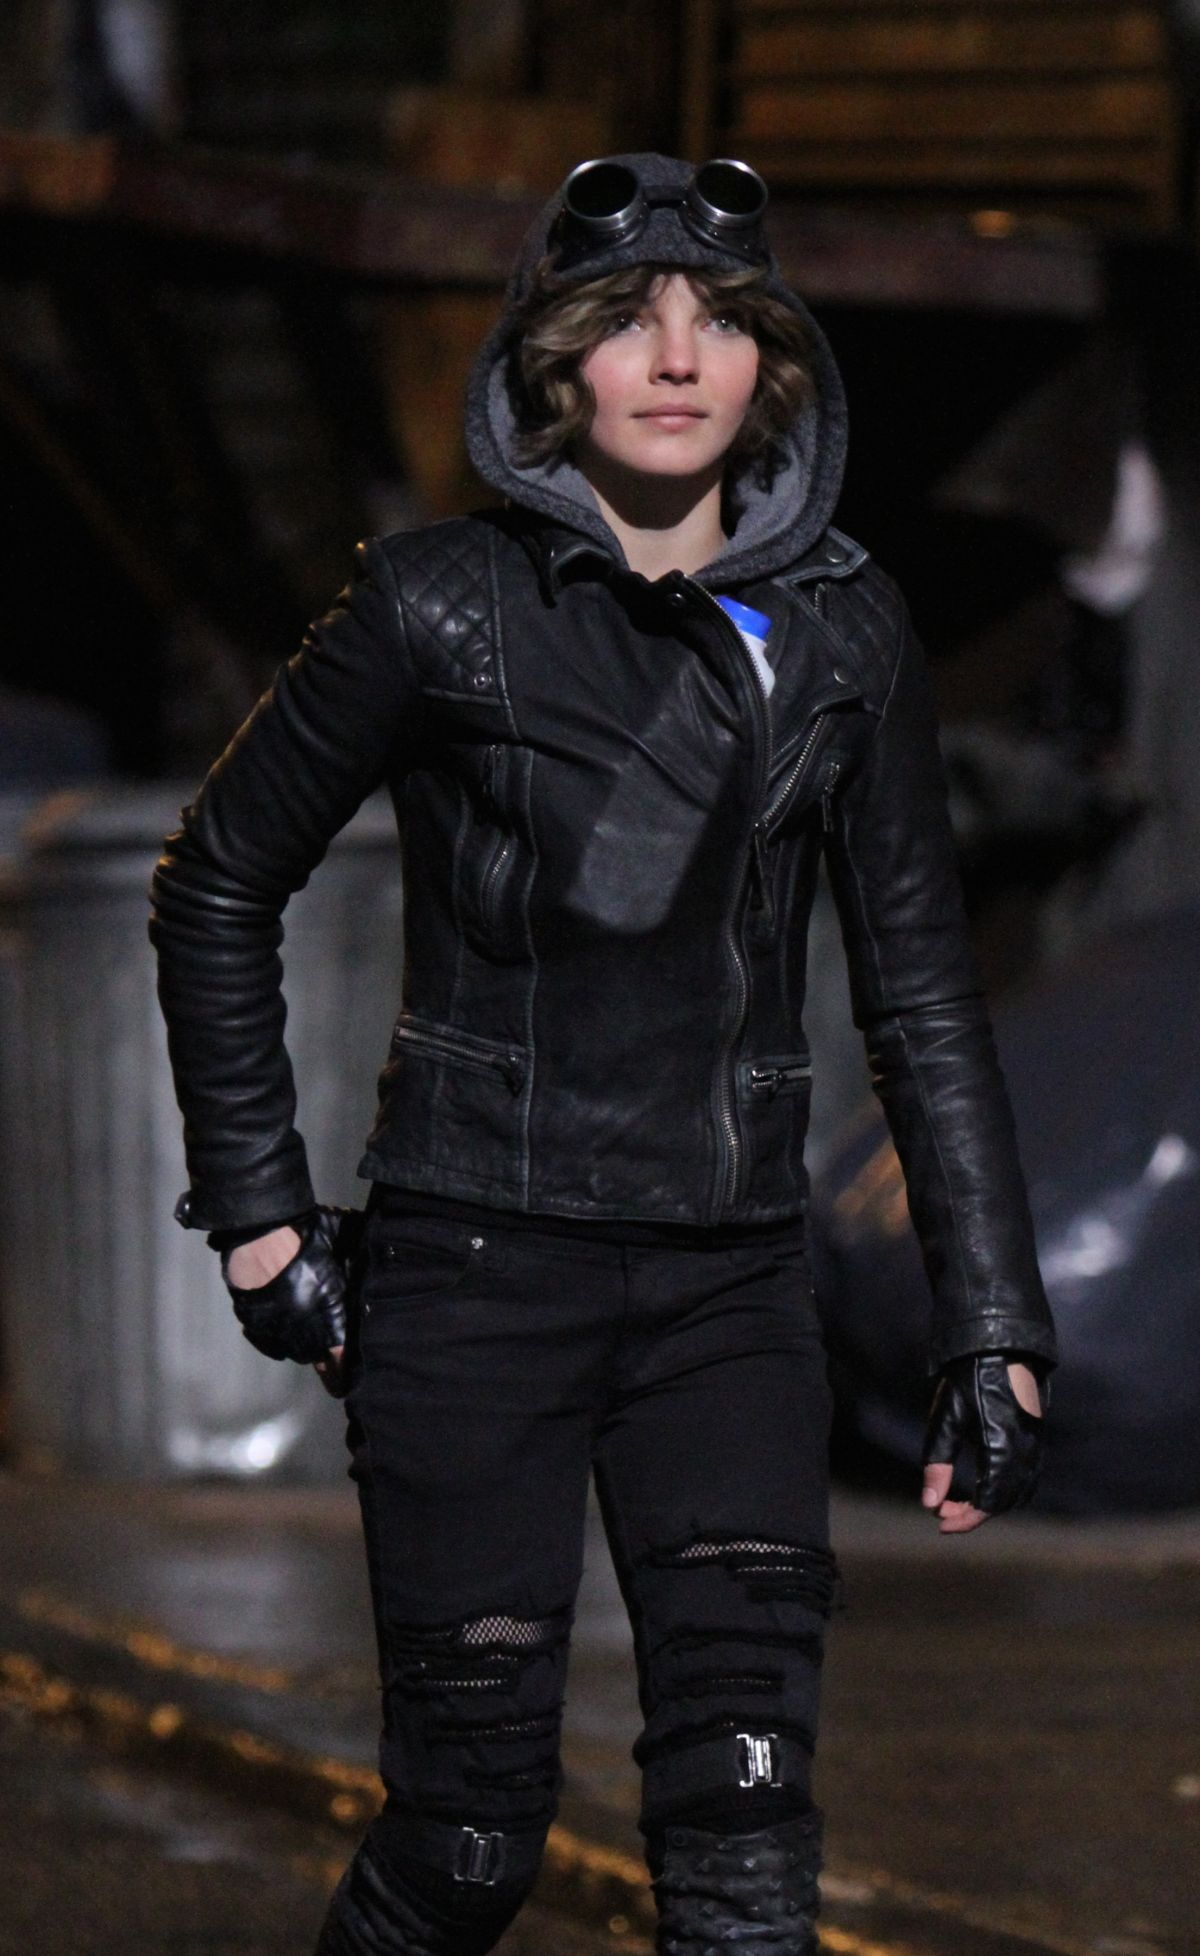 CAMREN BICONDOVA on the set of Gotham TV Series in New York